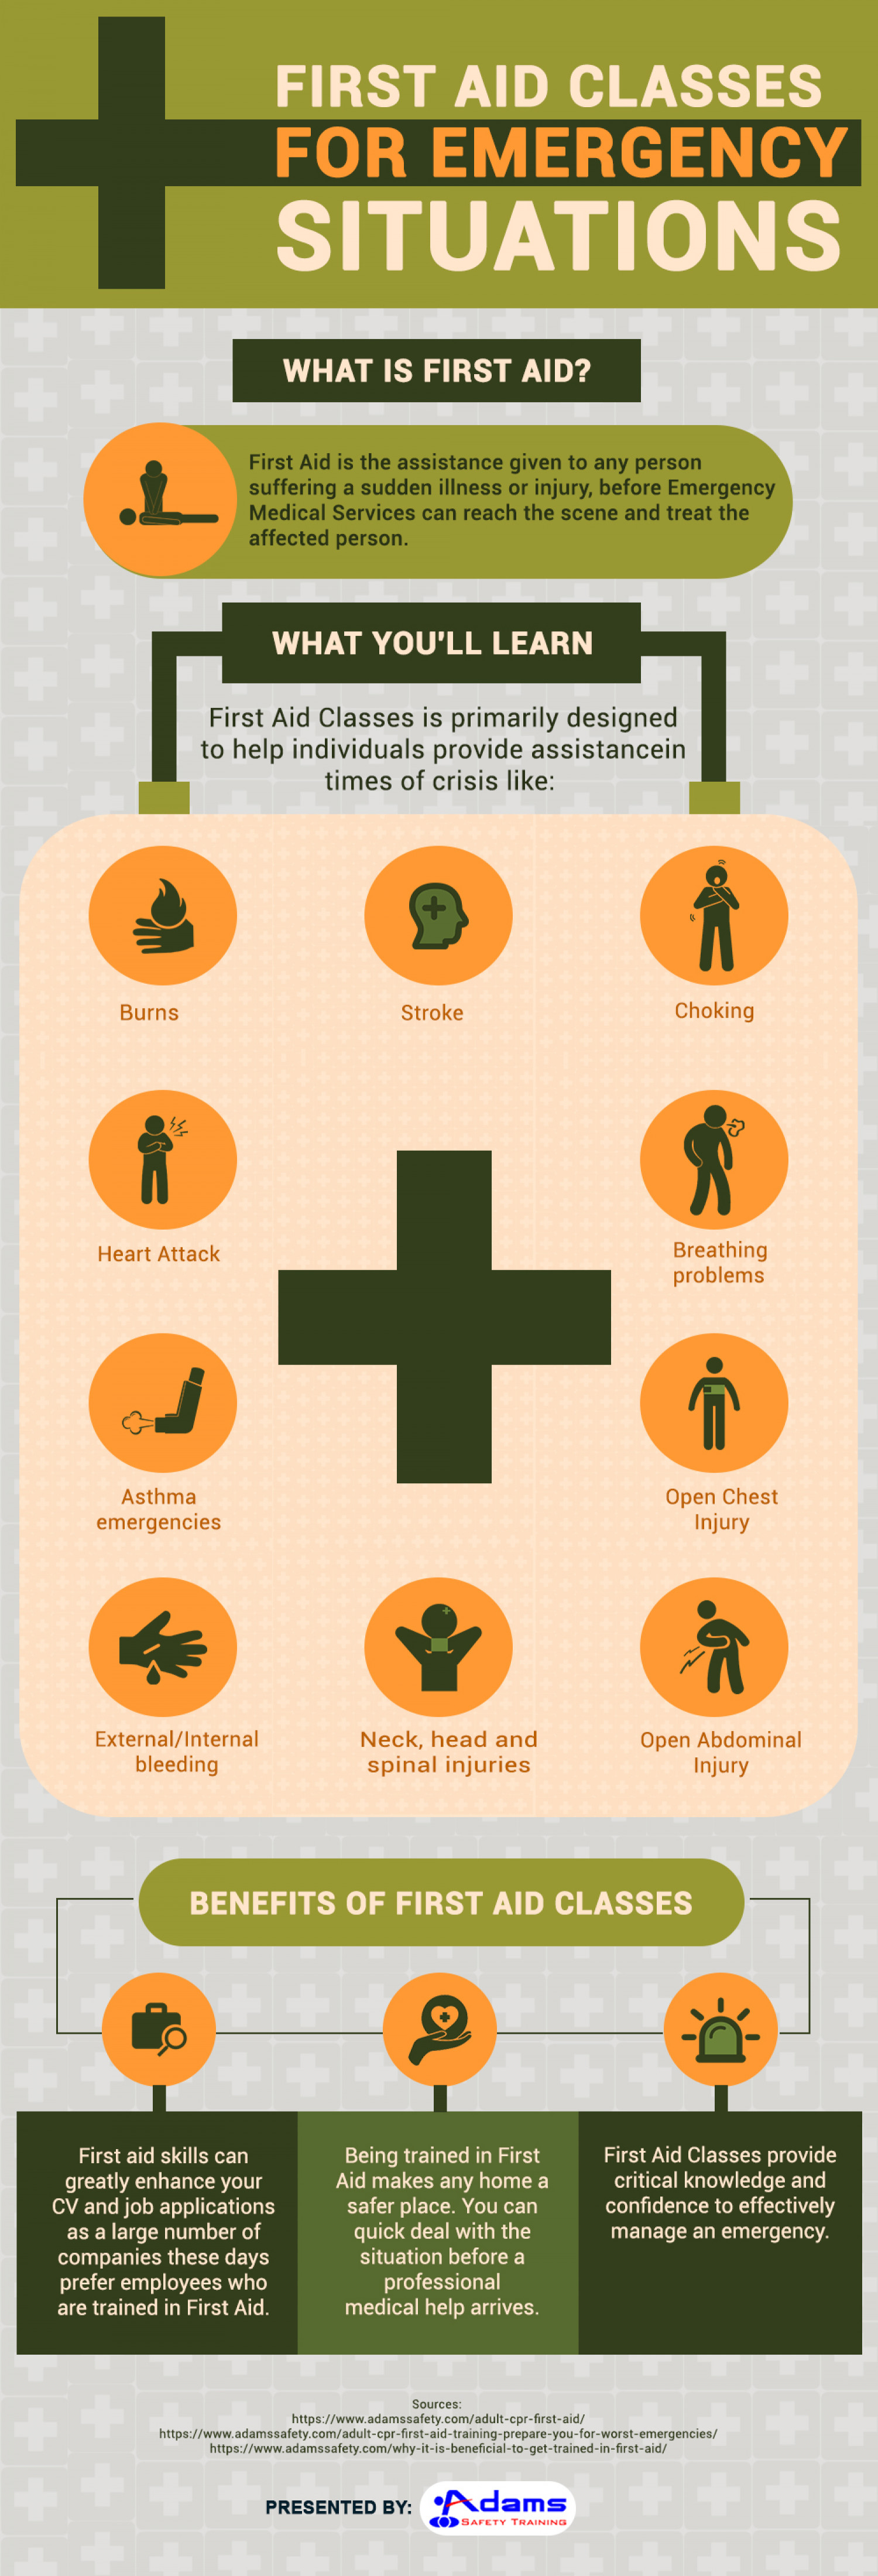 First-Aid: Features & Benefits Infographic